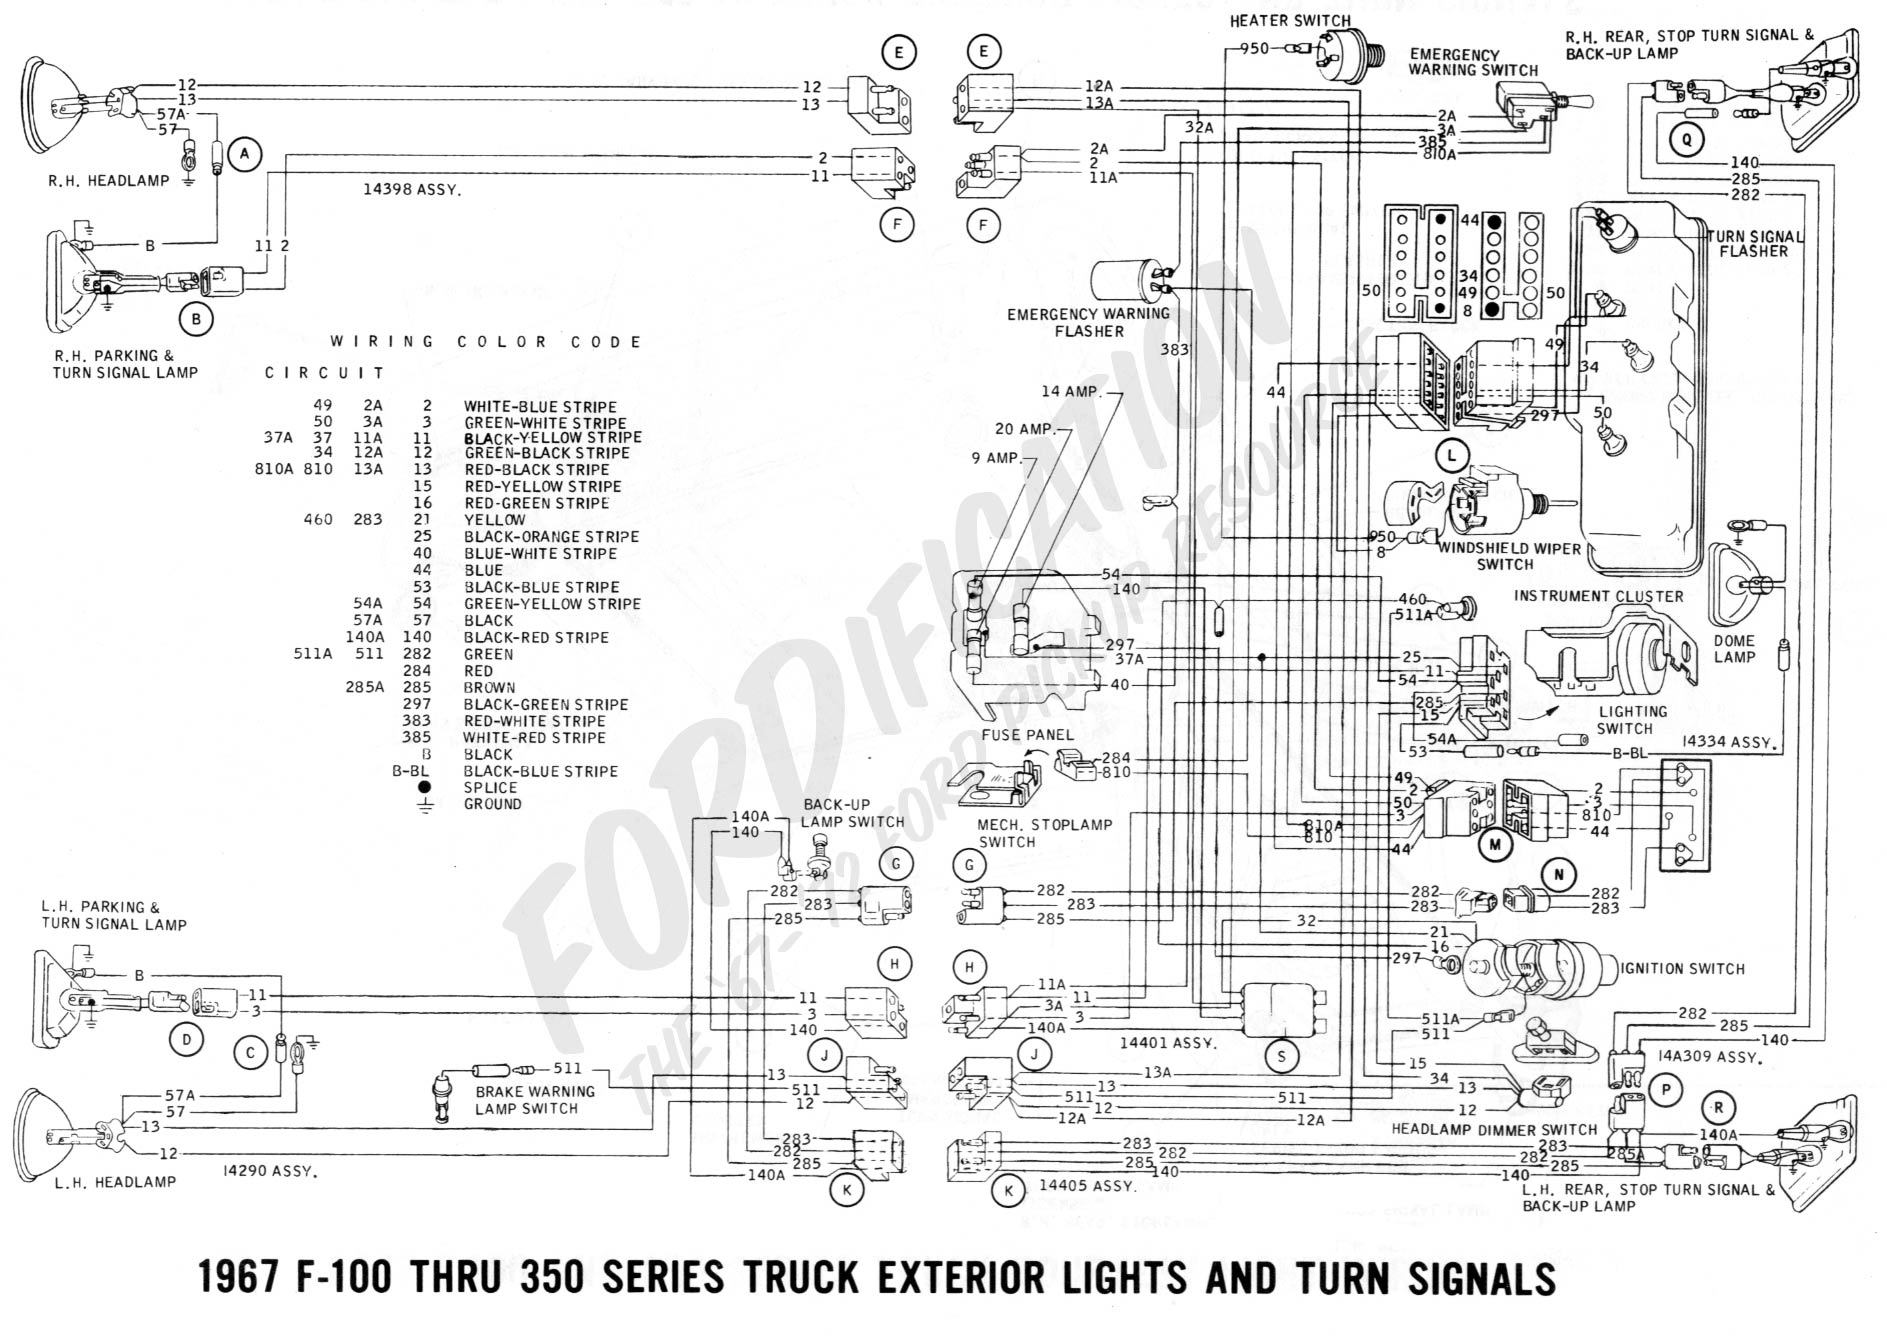 80 1967_exterior_lights_and_turn_signals_page_2_1db6c529c4c9567560e56d6320f993290ba5b803 66 mustang wiring diagram 1966 mustang dash wiring diagram 1966 ford truck wiring diagram at n-0.co